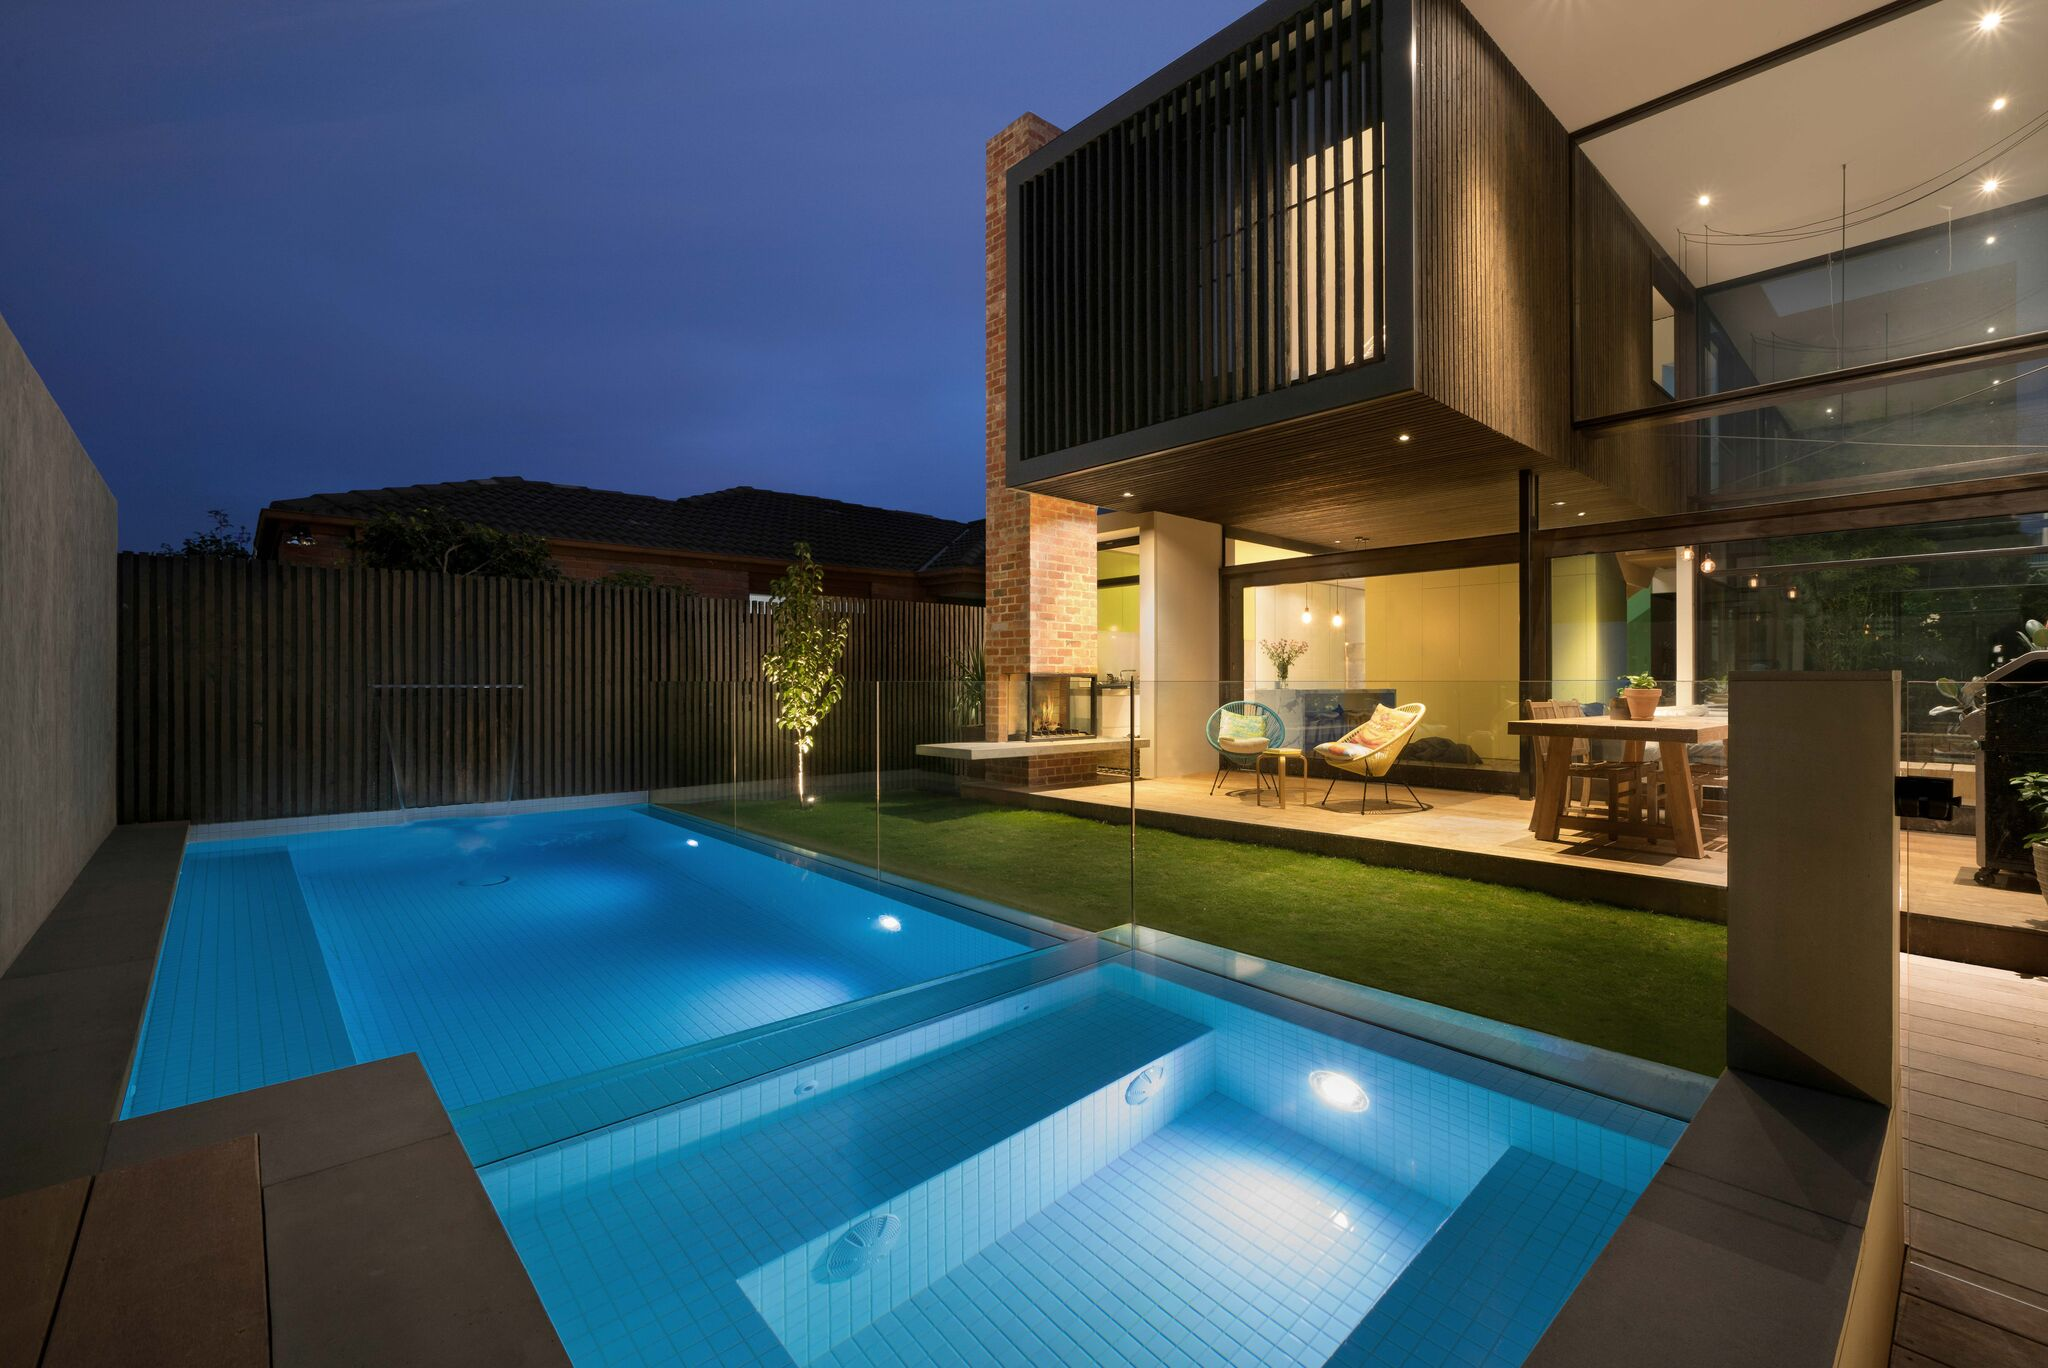 Plunge Pool And Spa Richmond Neptune Pools